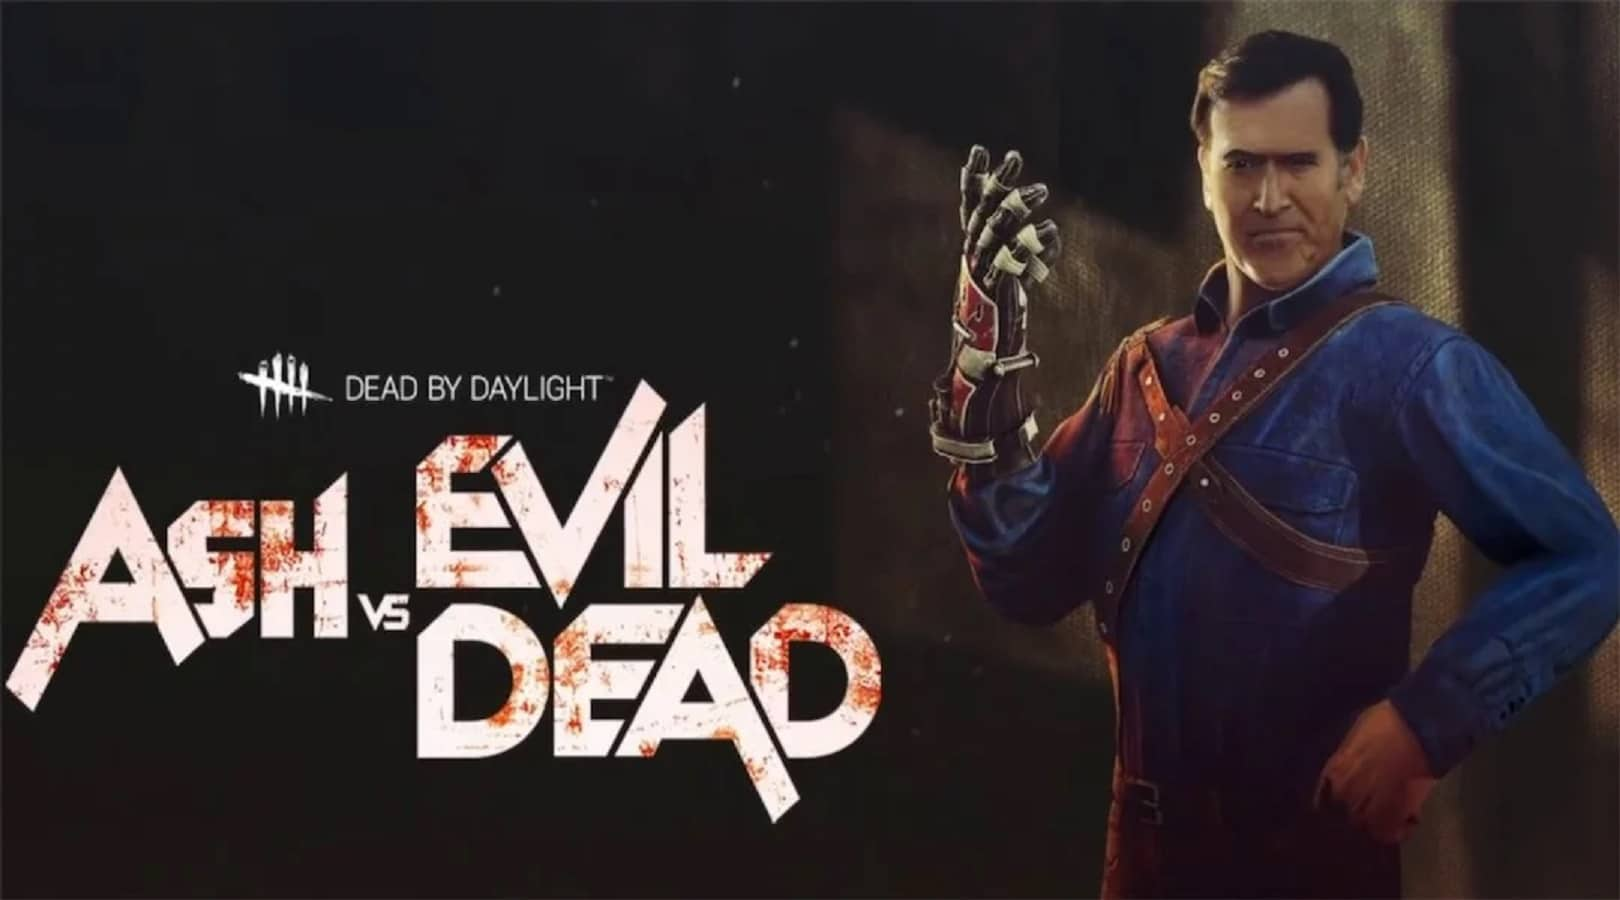 dead by daylight sees ash from evil dead join the fight